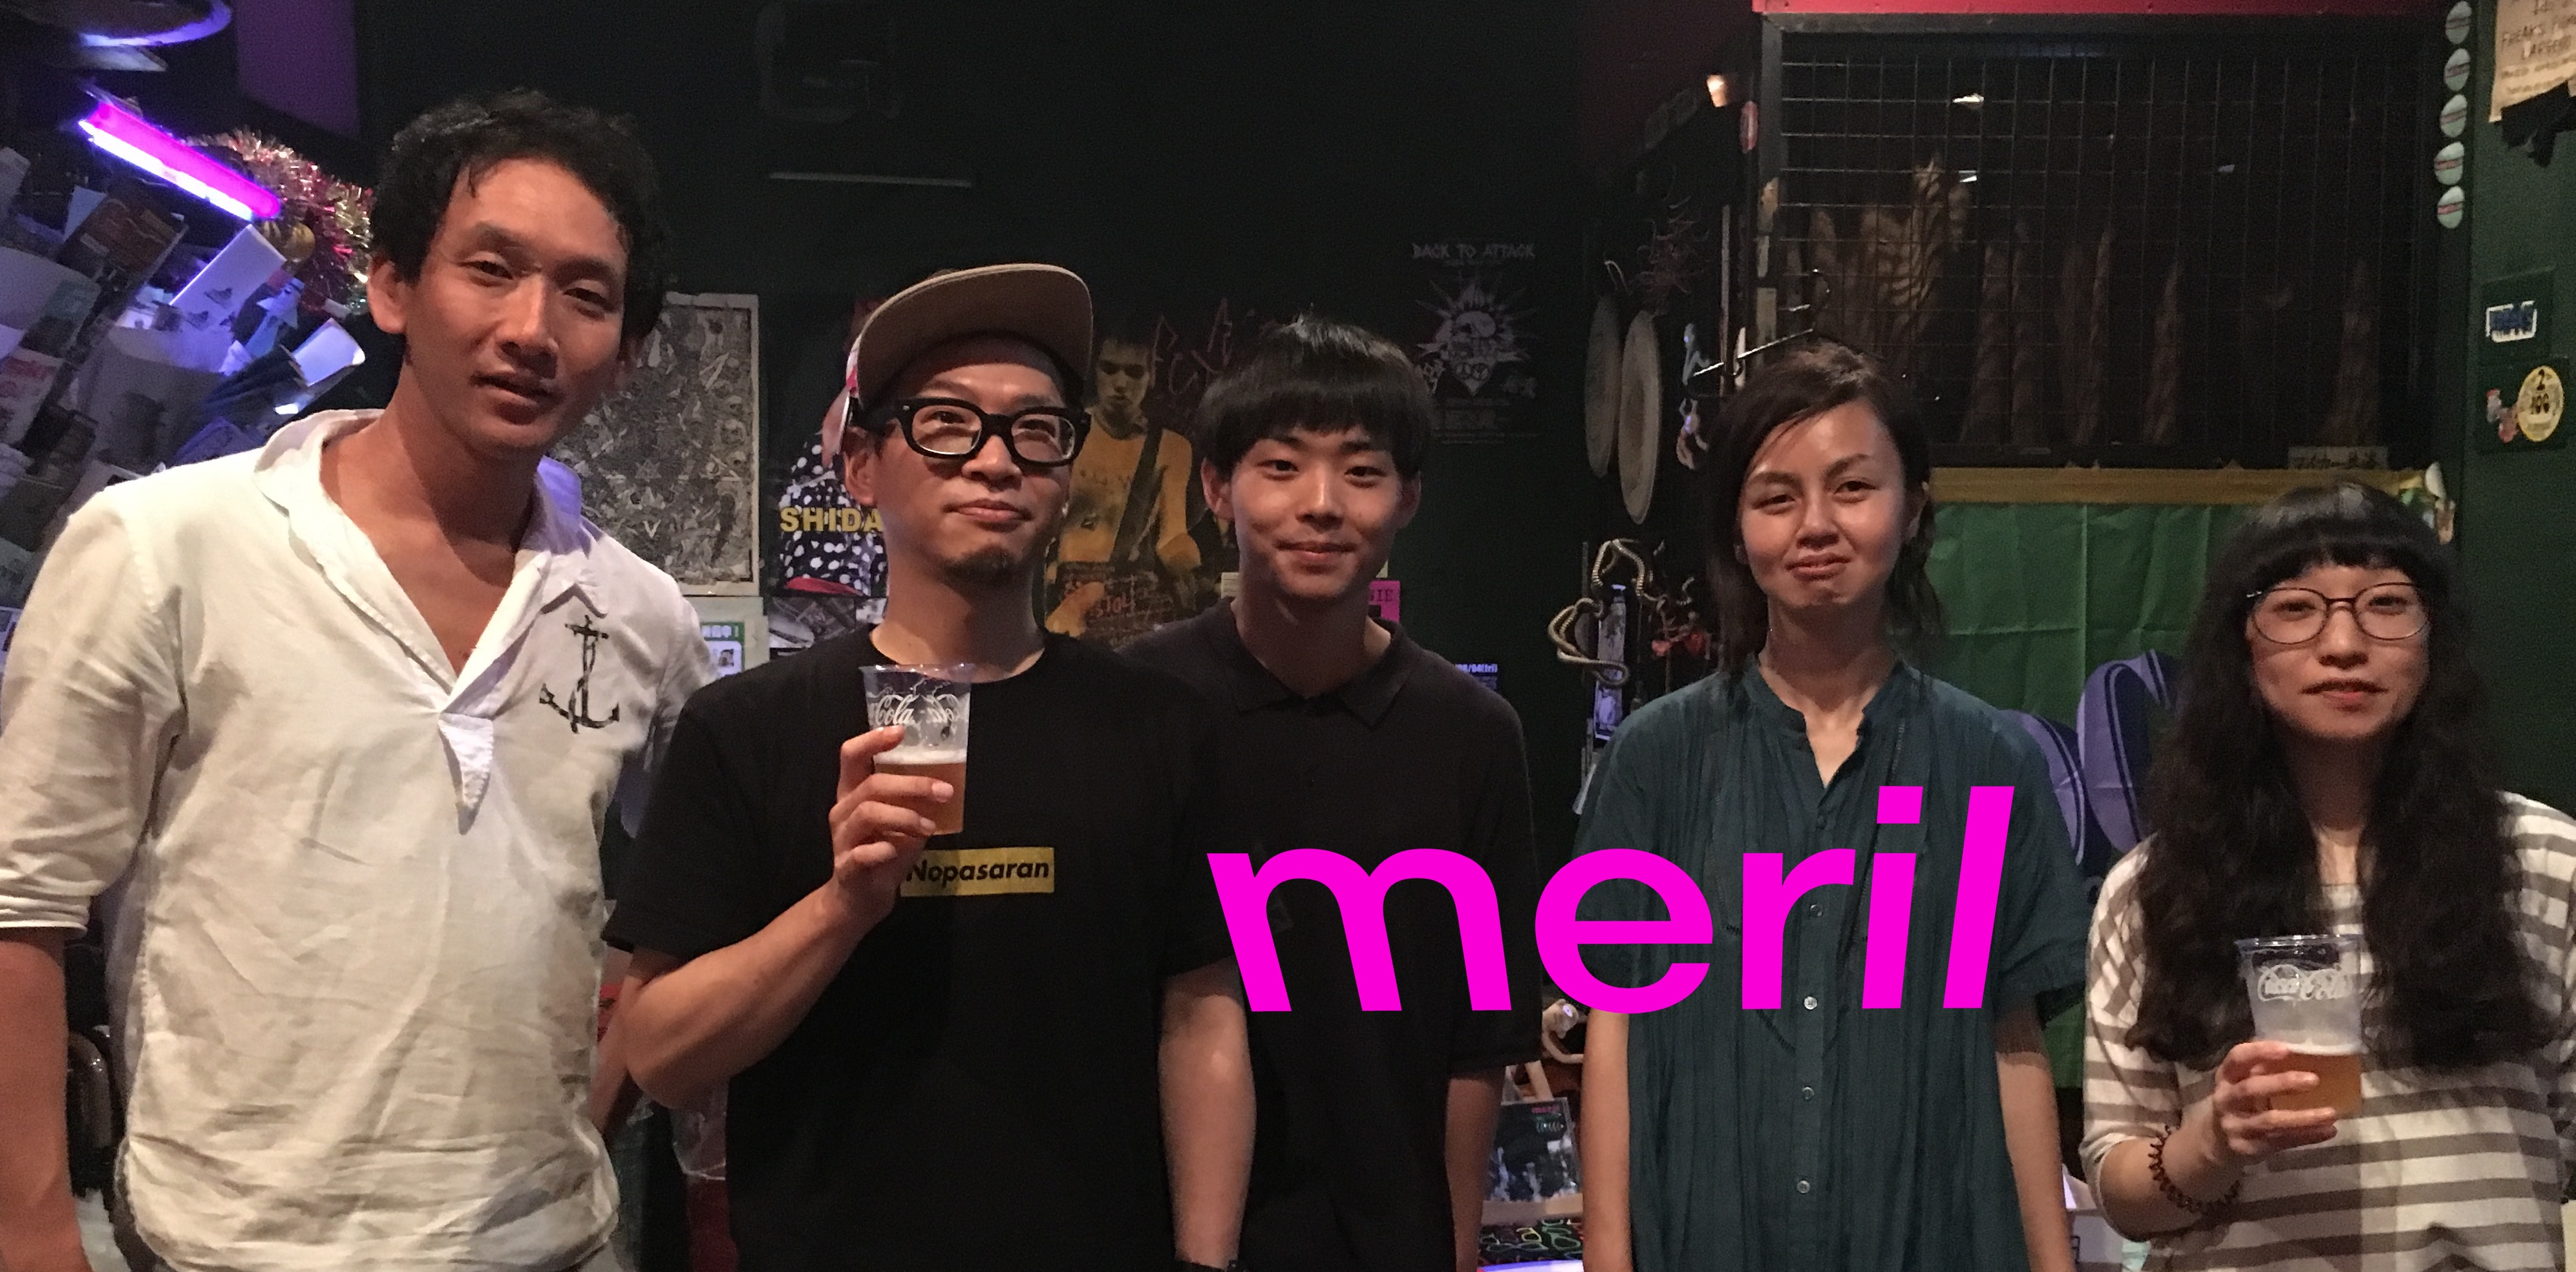 meril official website